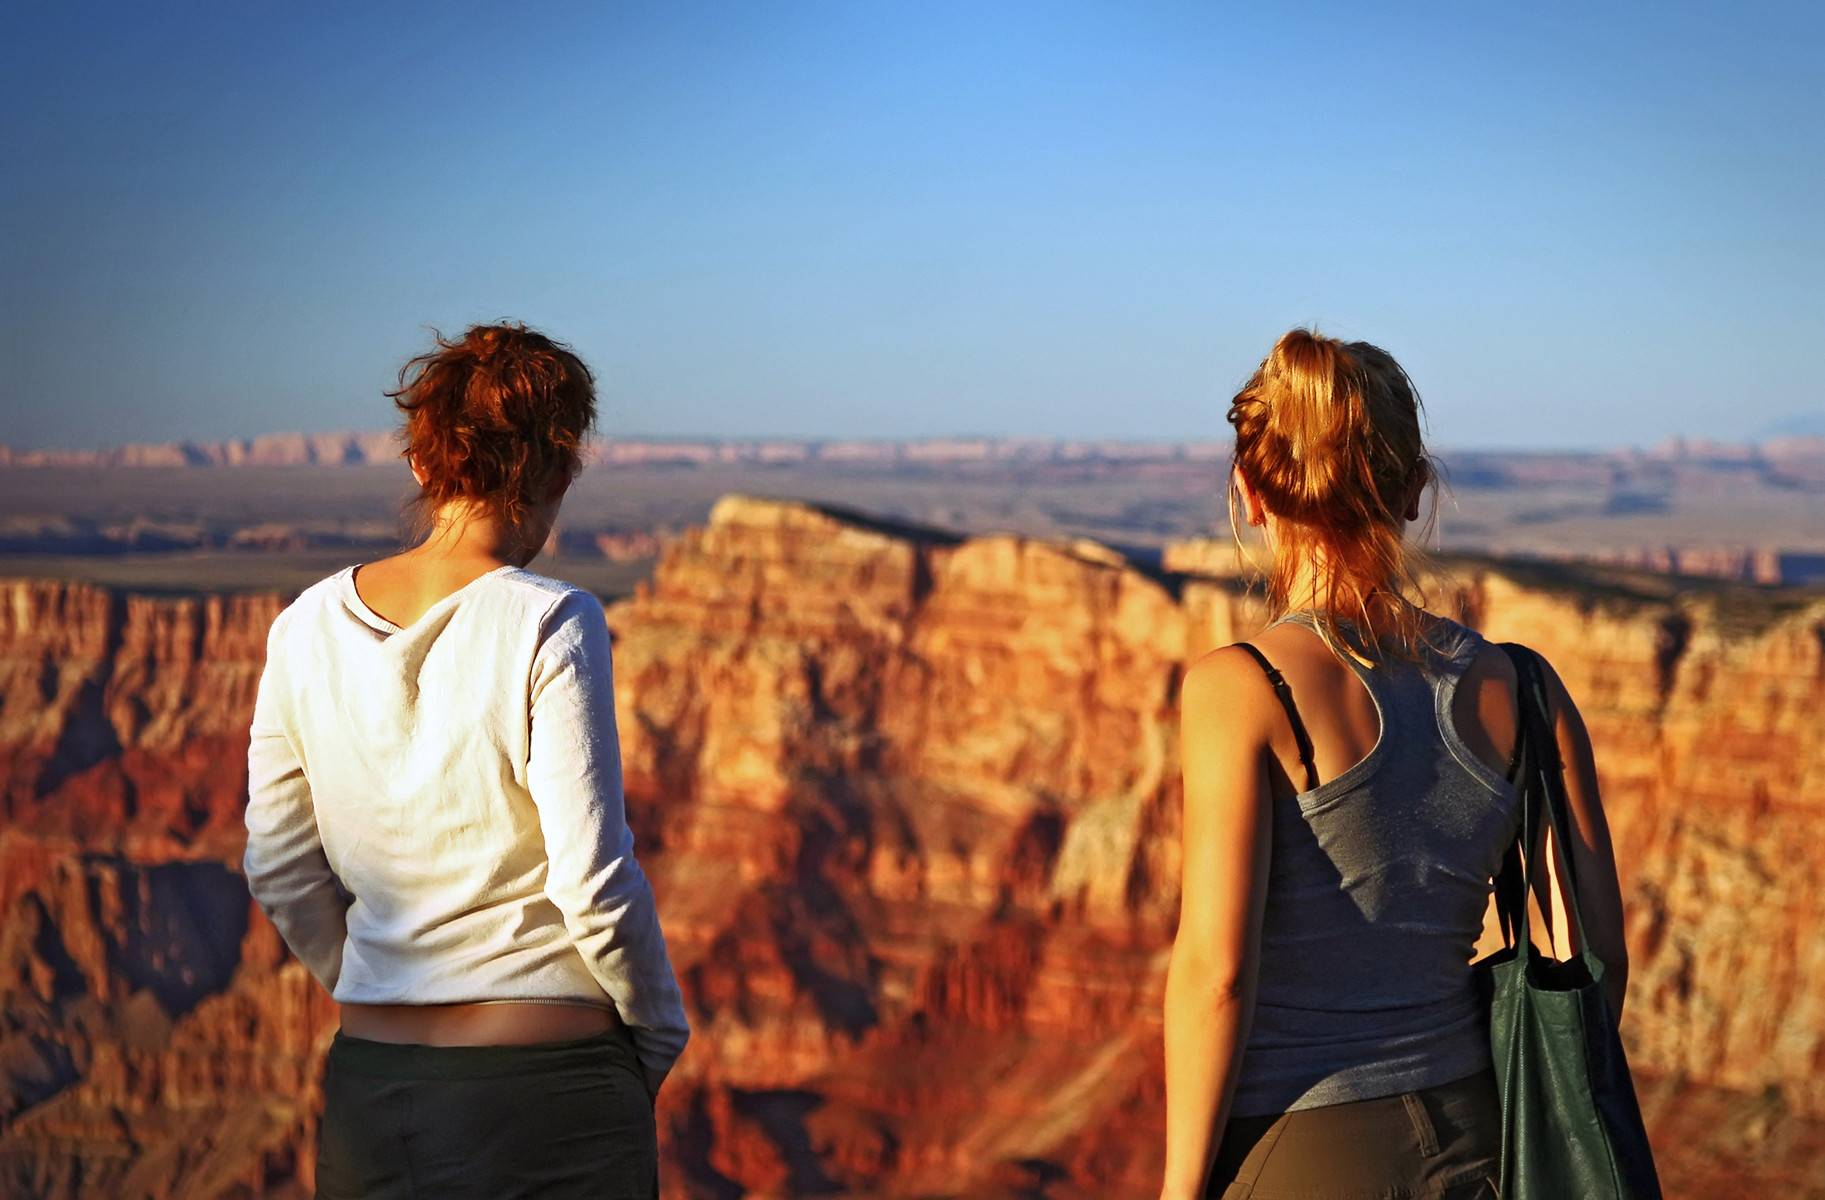 4-Day Bus Tour to Yosemite, Grand Canyon South or West and Las Vegas